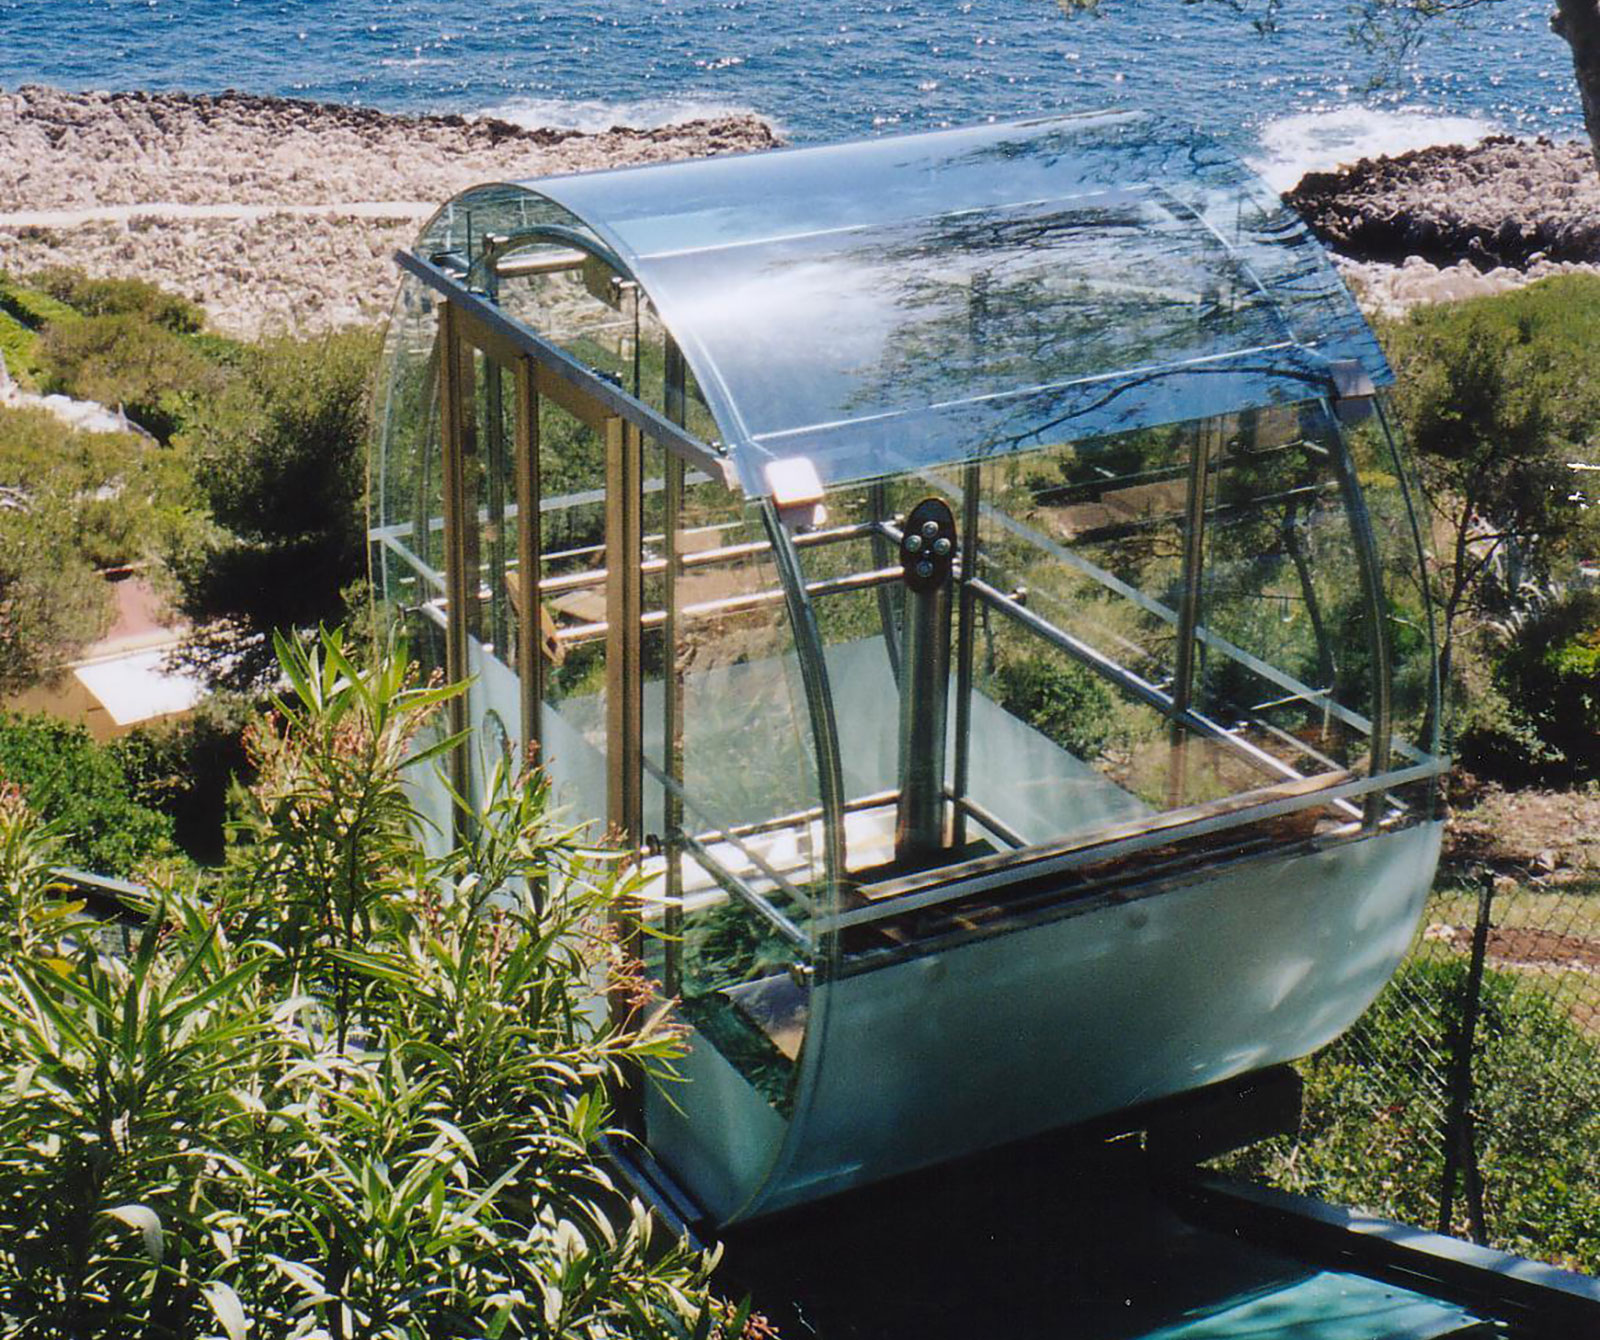 Panoramic Glass Lifts for the Grand Hotel Cap-Ferrat, France